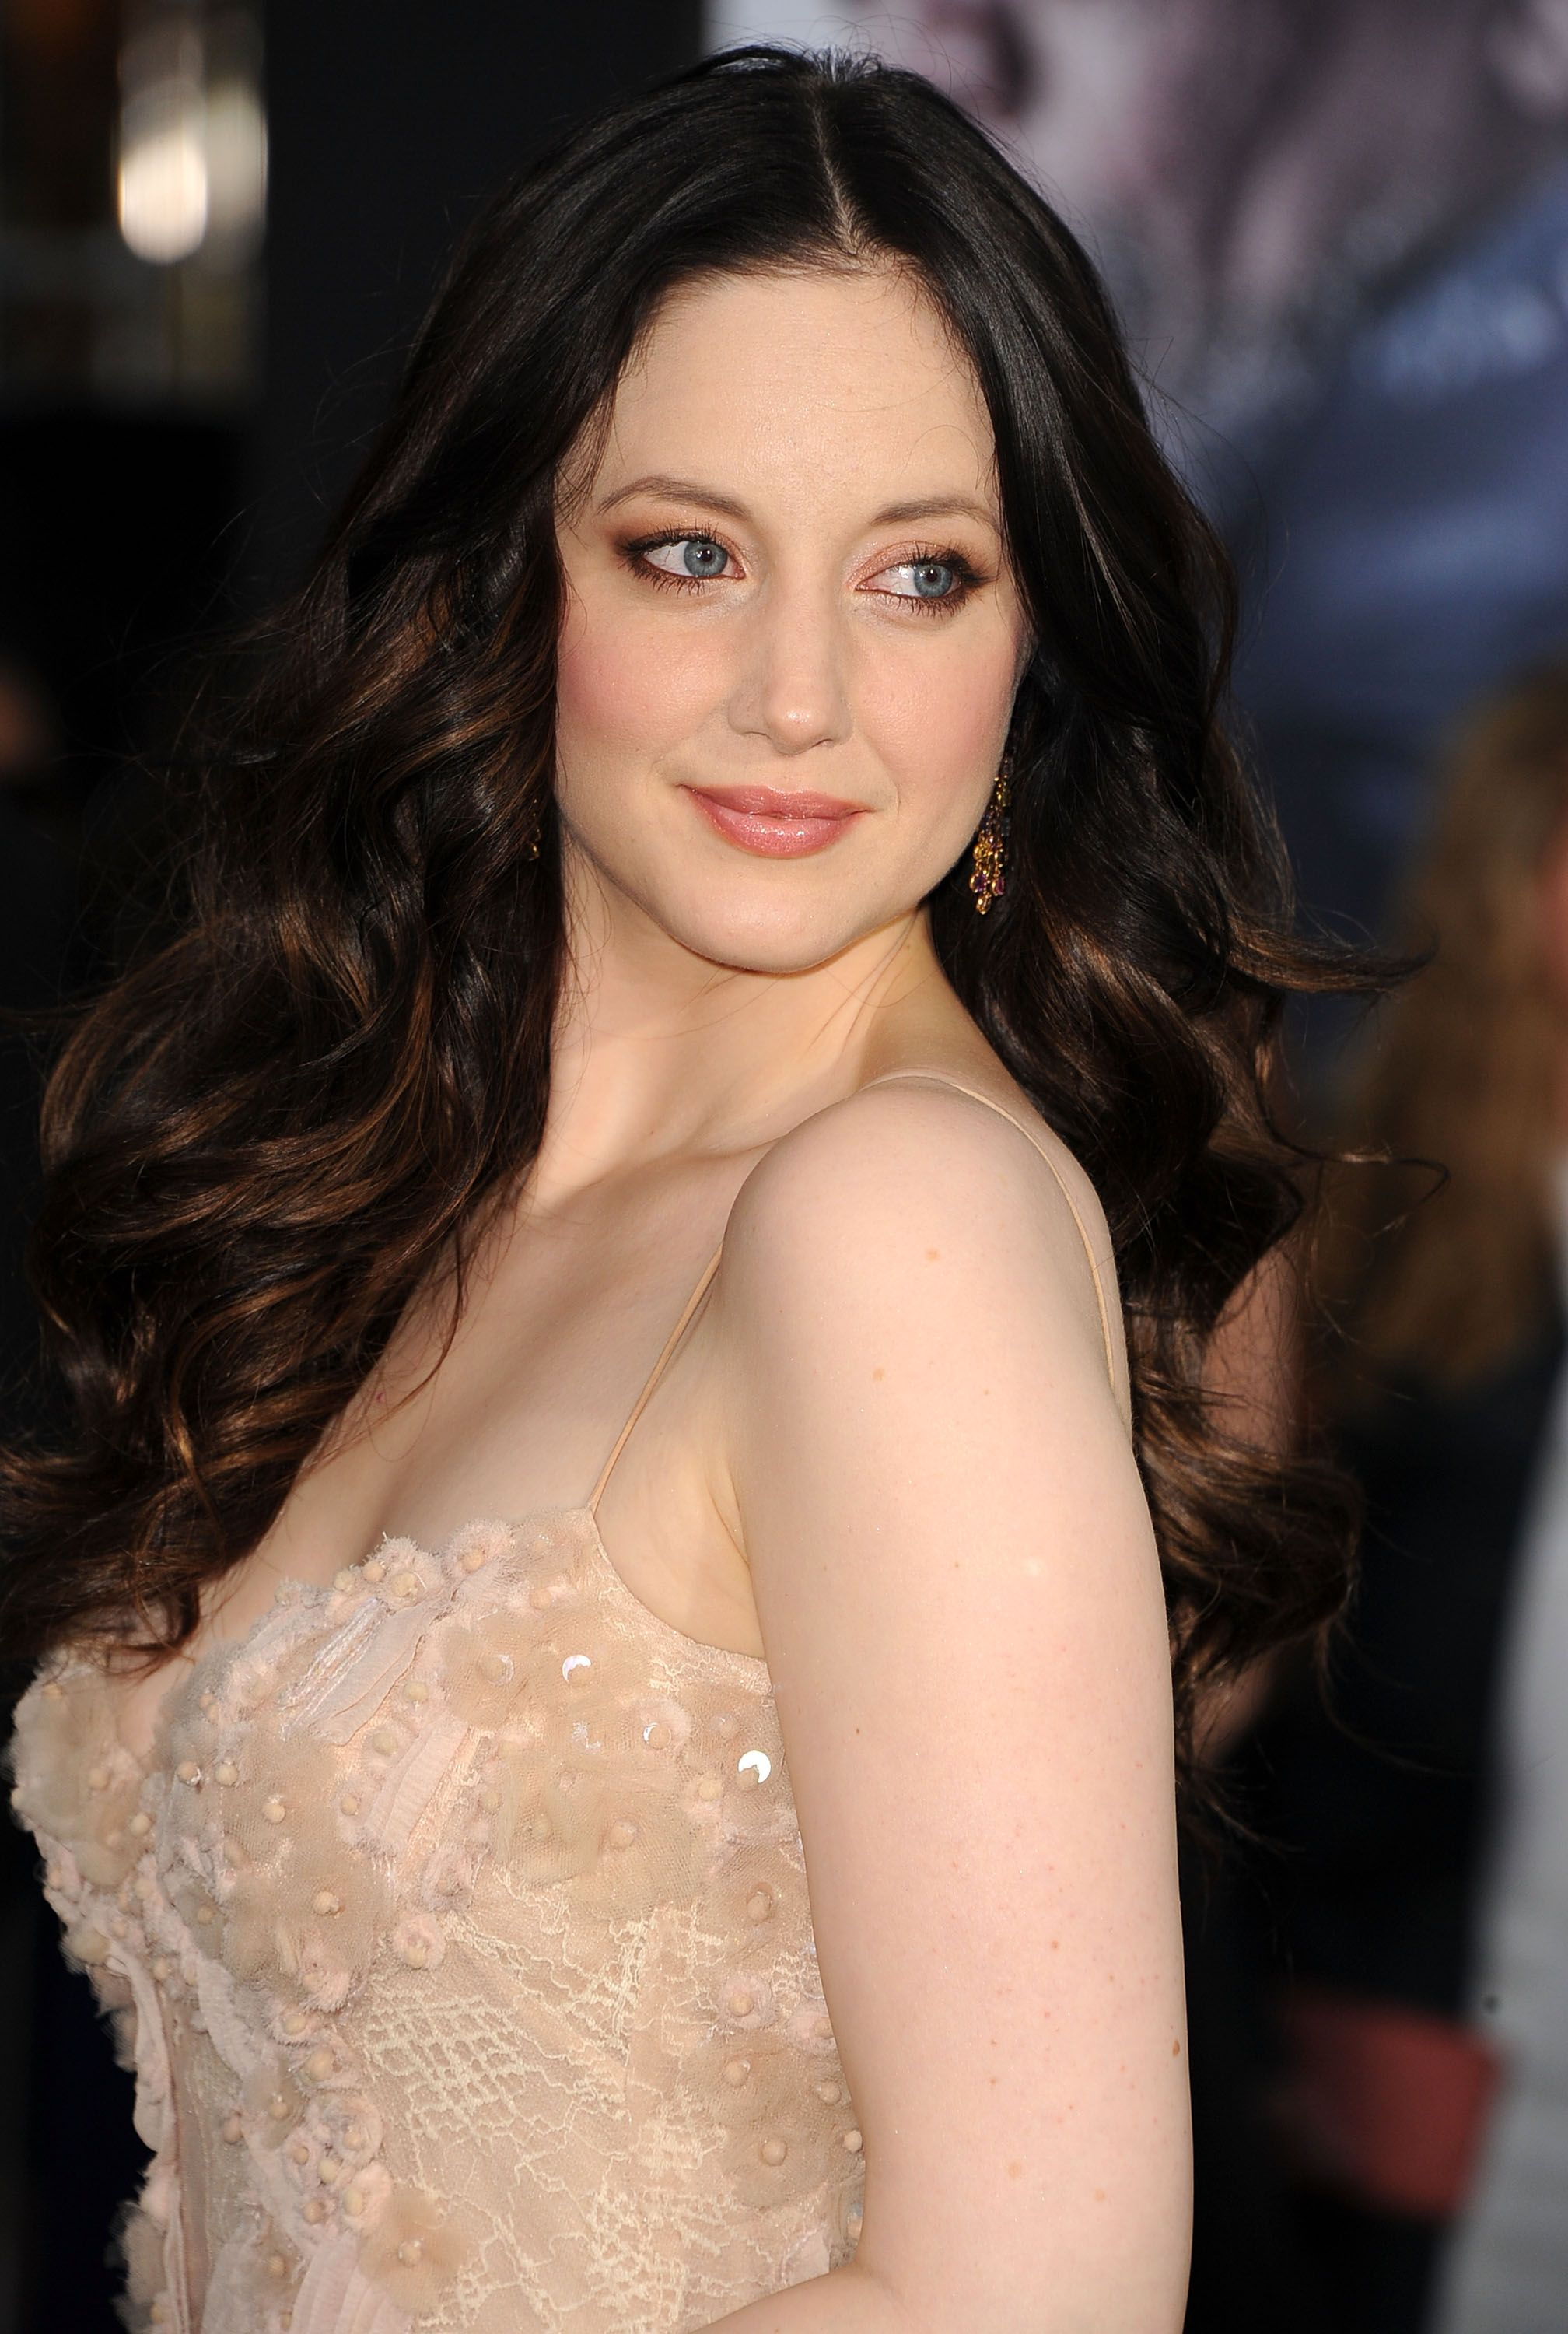 Andrea Riseborough earned a  million dollar salary, leaving the net worth at 5 million in 2017